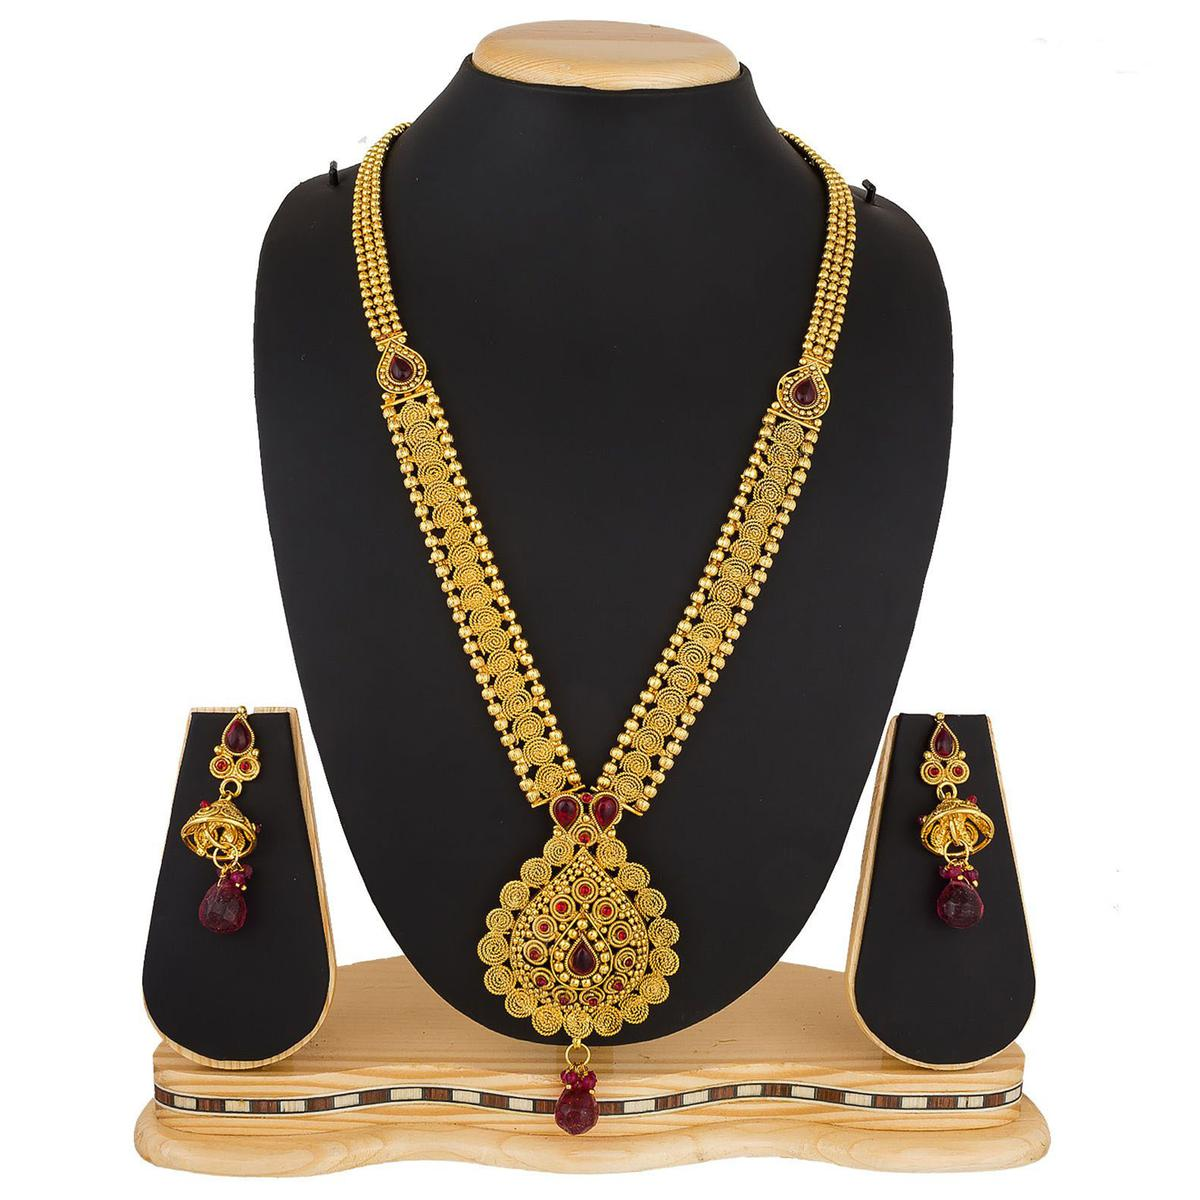 Graceful Golden Colored Stone Work Mix Metal Necklace Set